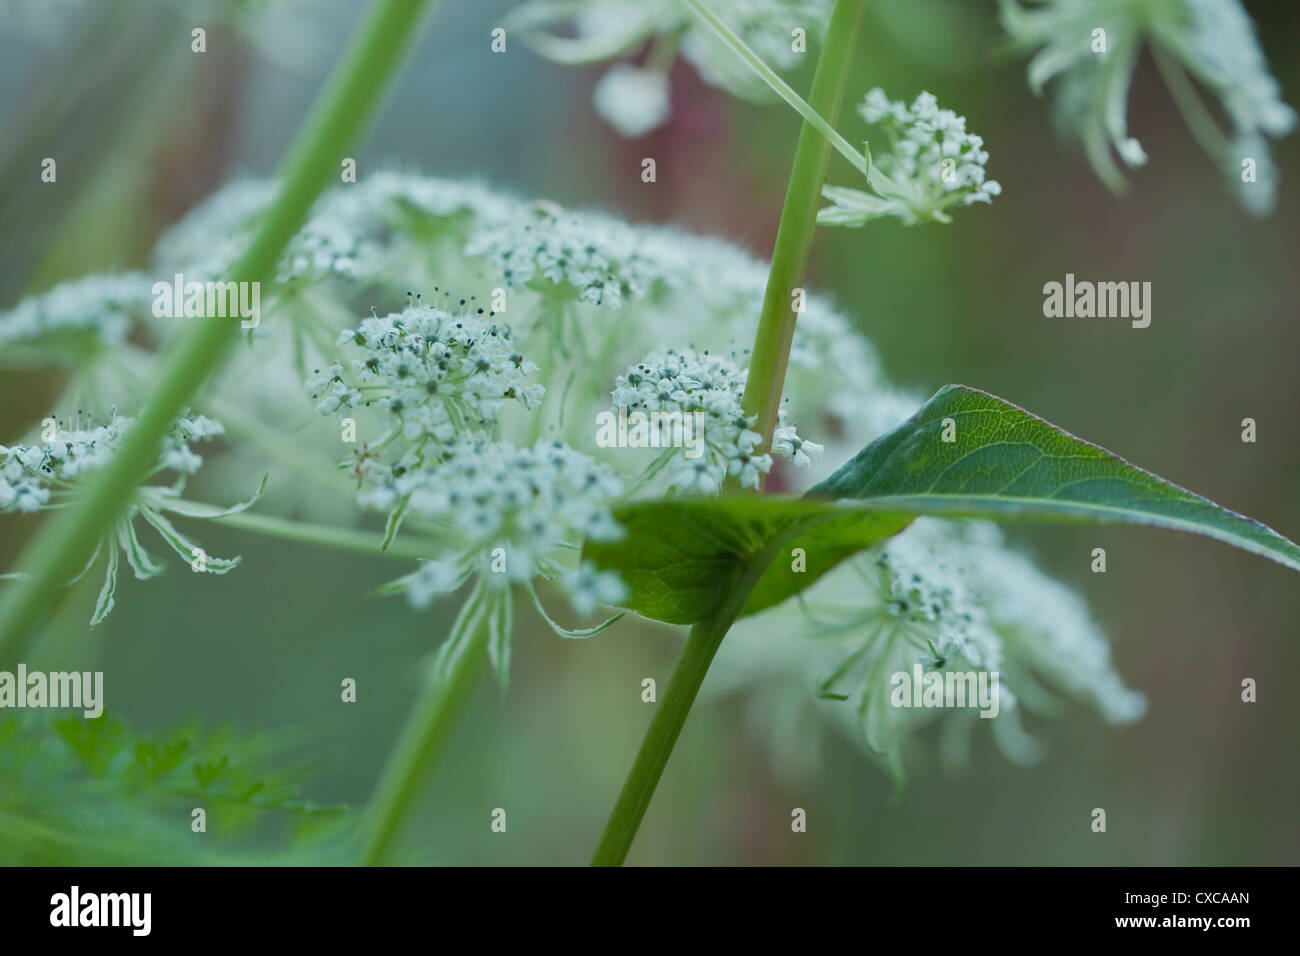 Selinum wallichianum umbellifer flowers resting against single stem, Persicara amplexicaulis 'Rosea', September, - Stock Image